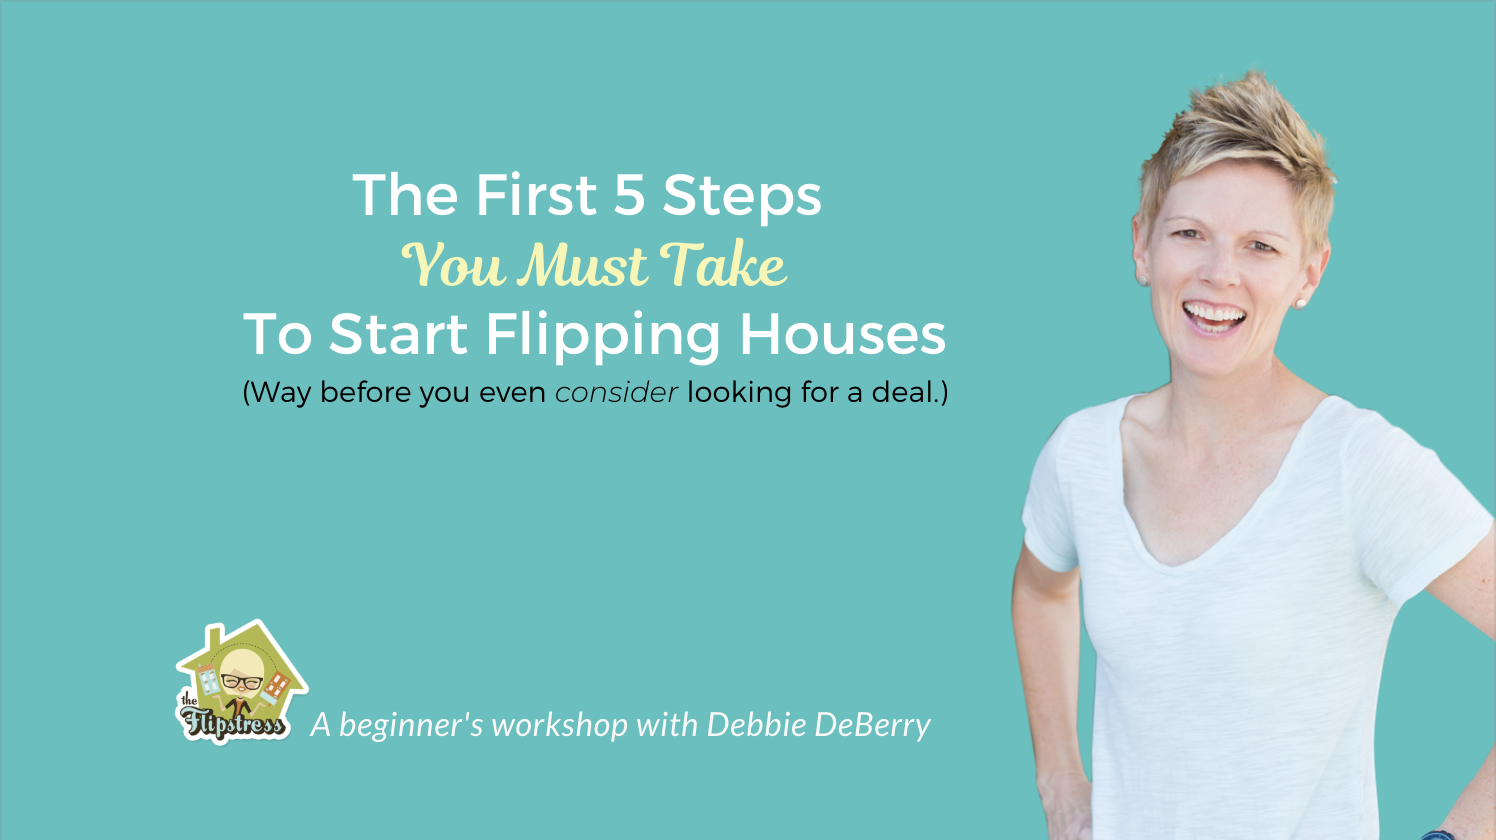 how to get started flipping houses workshop